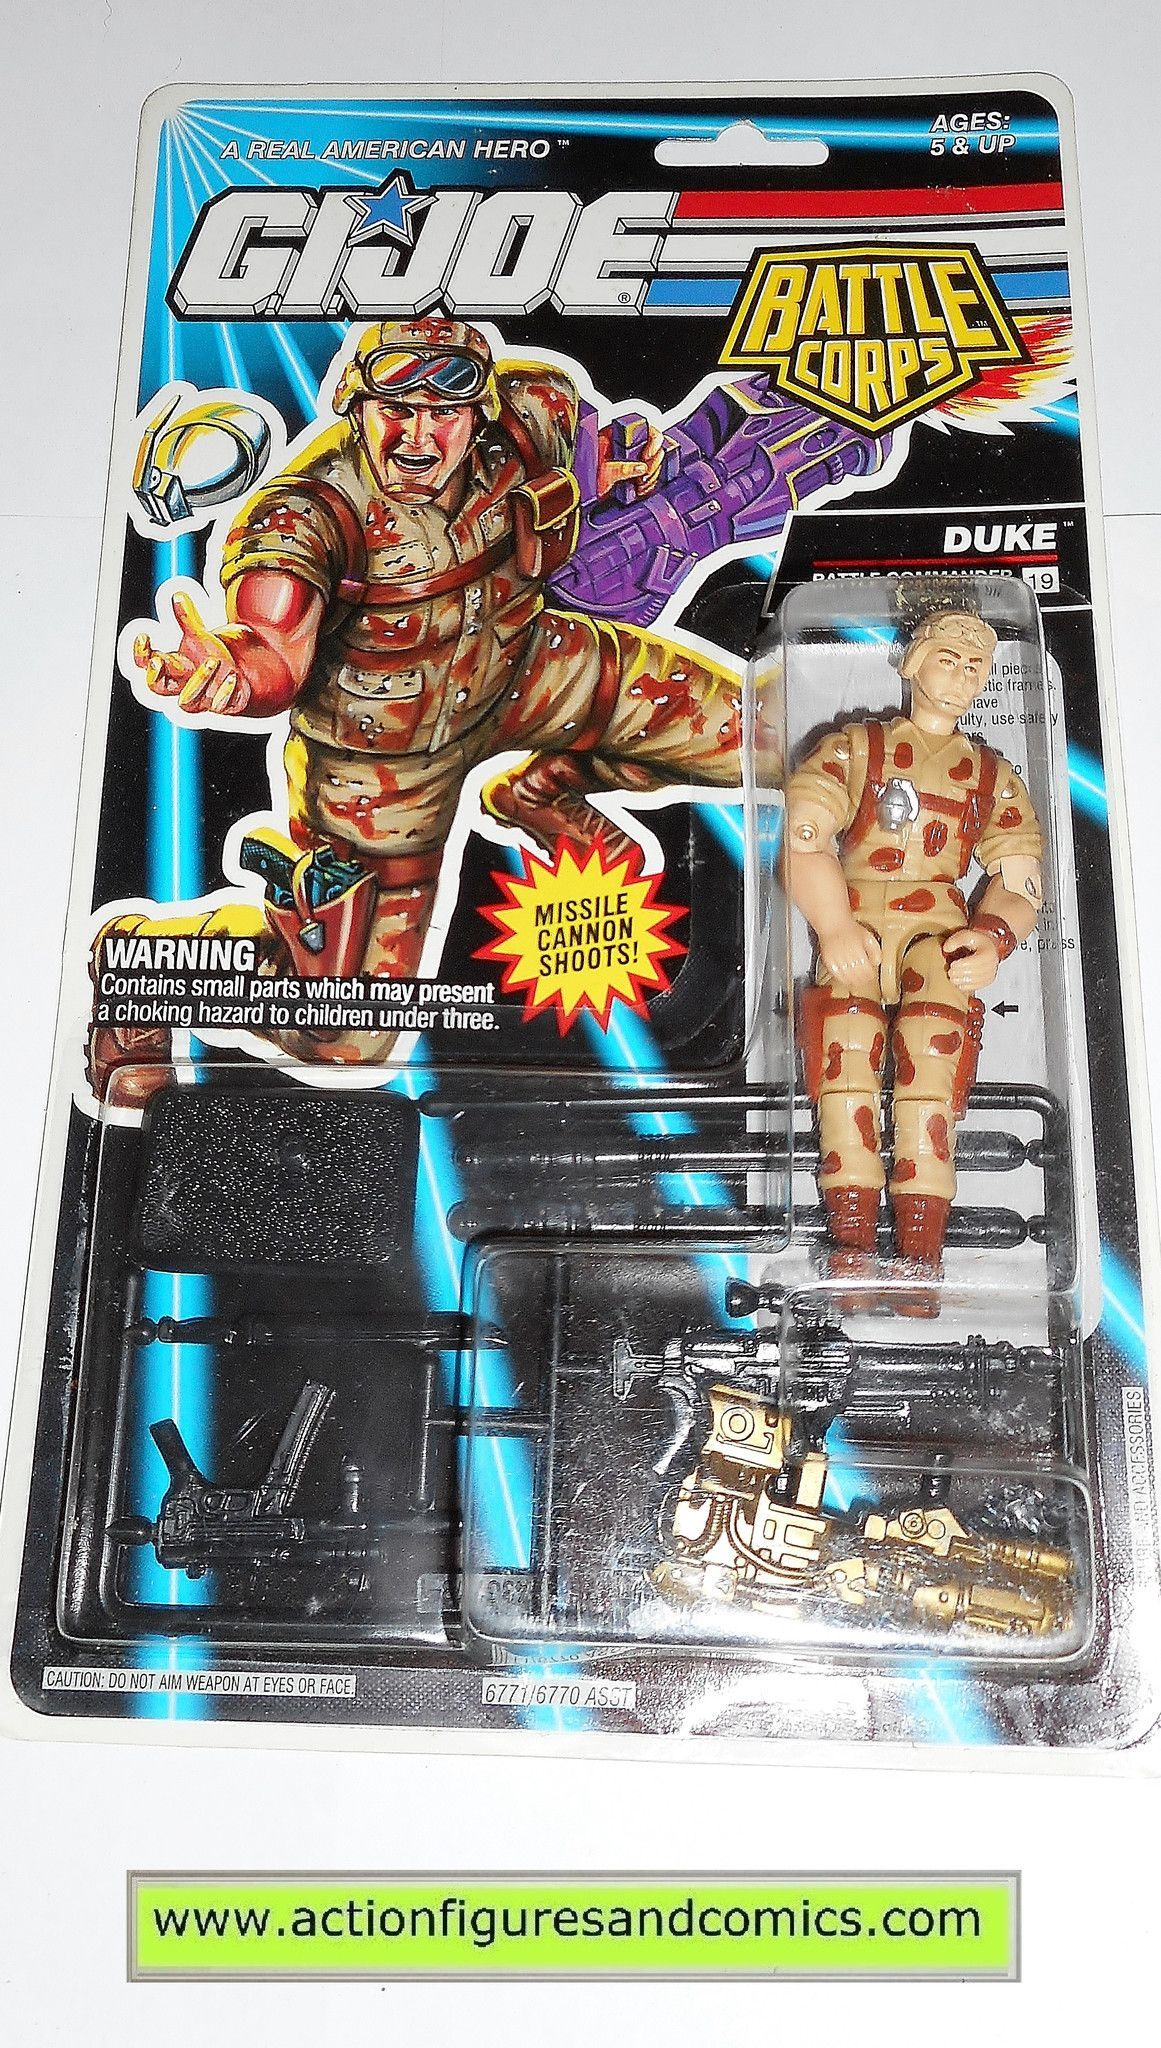 gi joe DUKE 1993 v4 battle corps vintage action figures hasbro